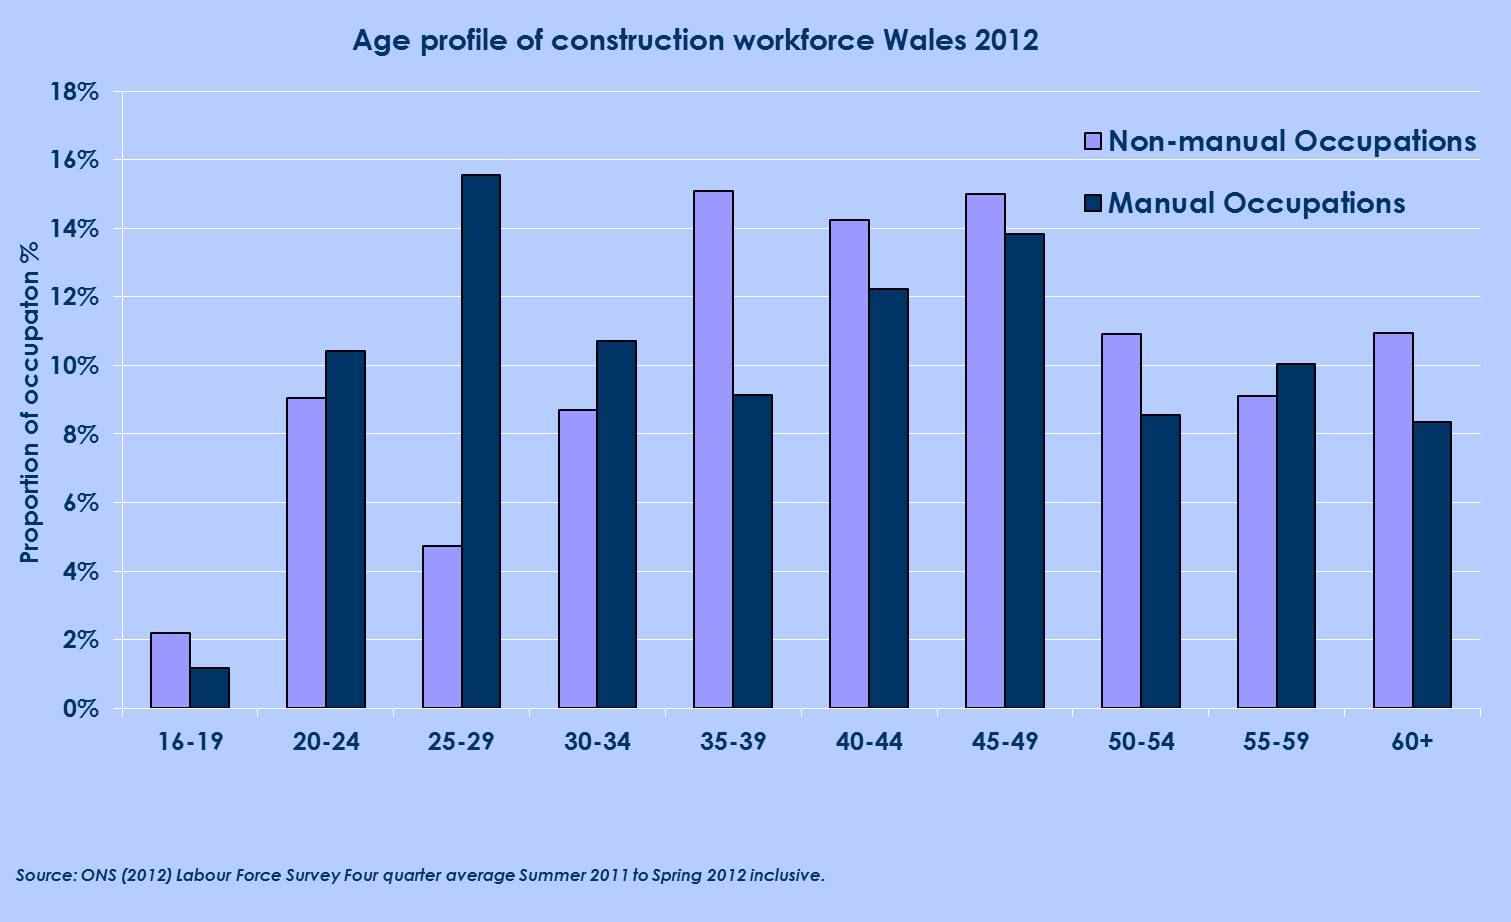 Figure 5: Age profile of construction workforce Wales 2012 For professional, managerial and manual occupations, the workforce has generally been distinguished by a decline in the share of the younger